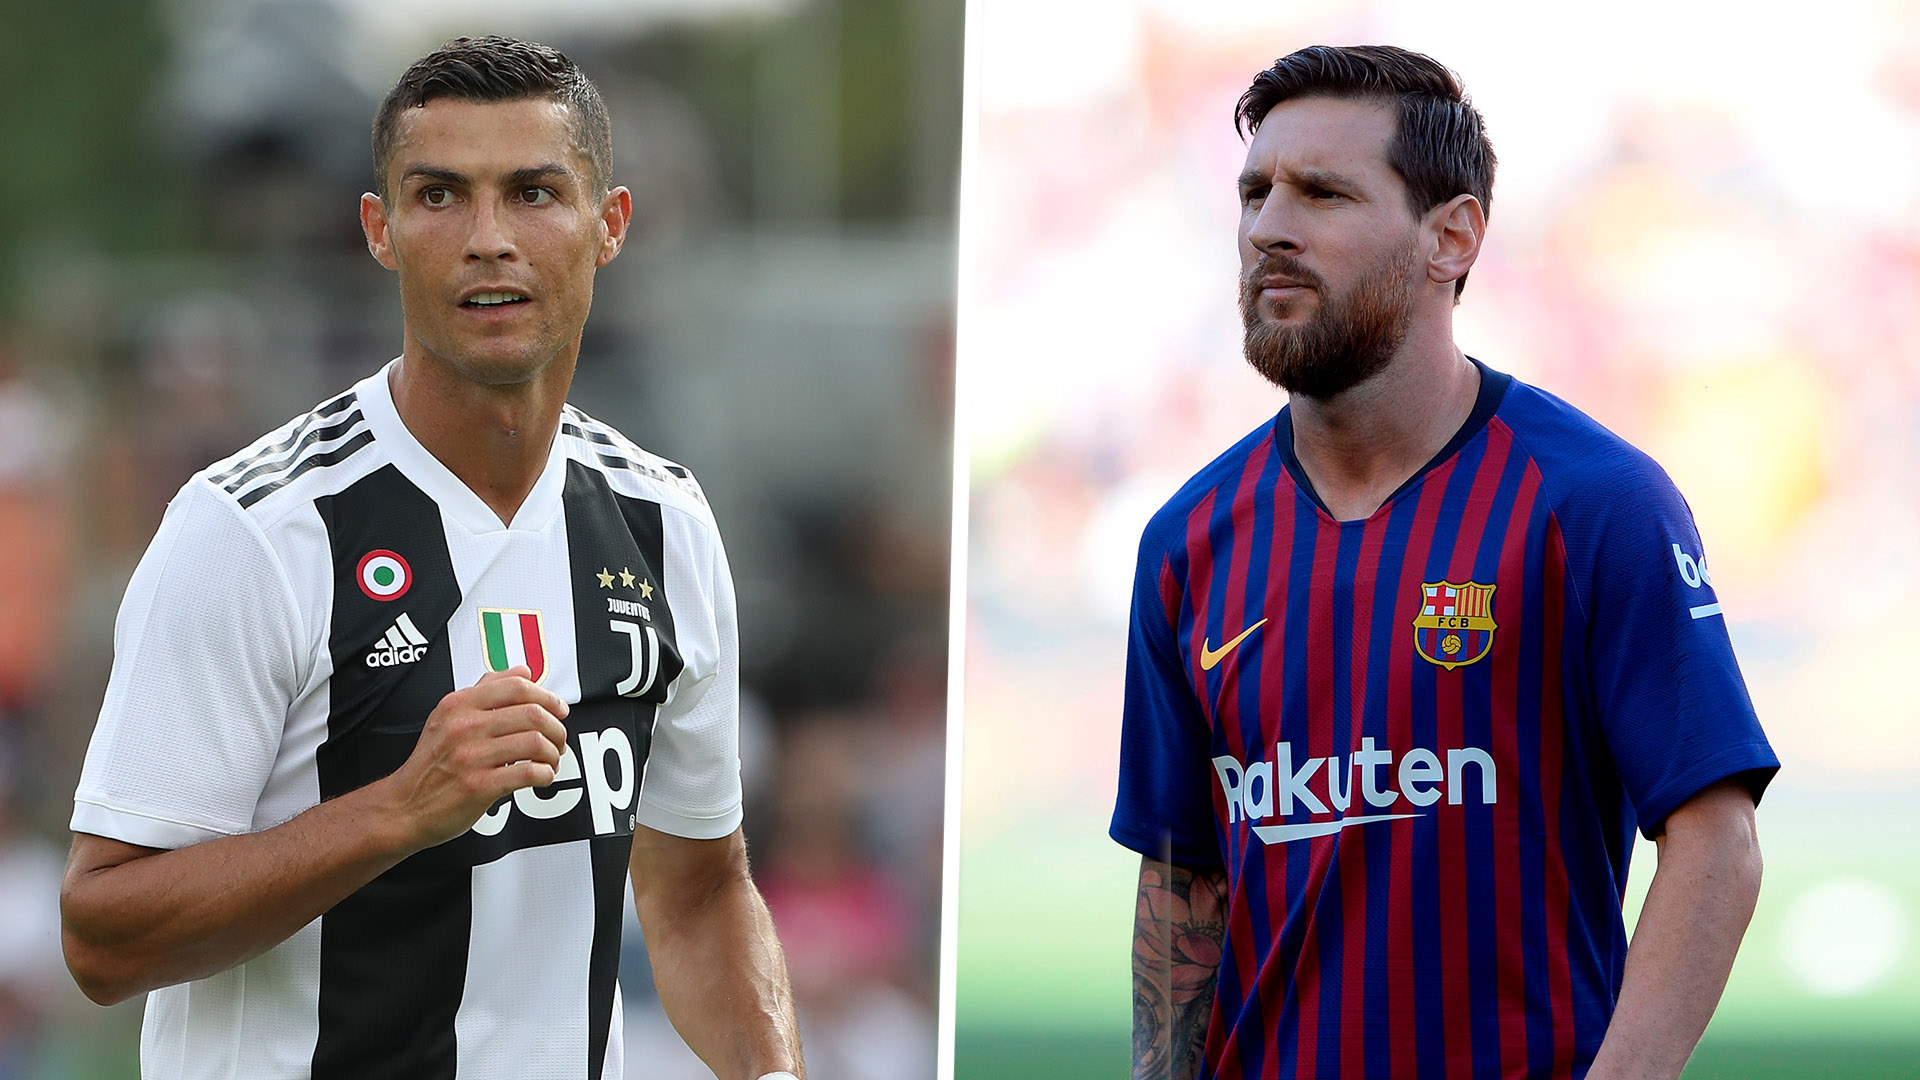 Tevez reveals difference between Ronaldo, Messi training methods